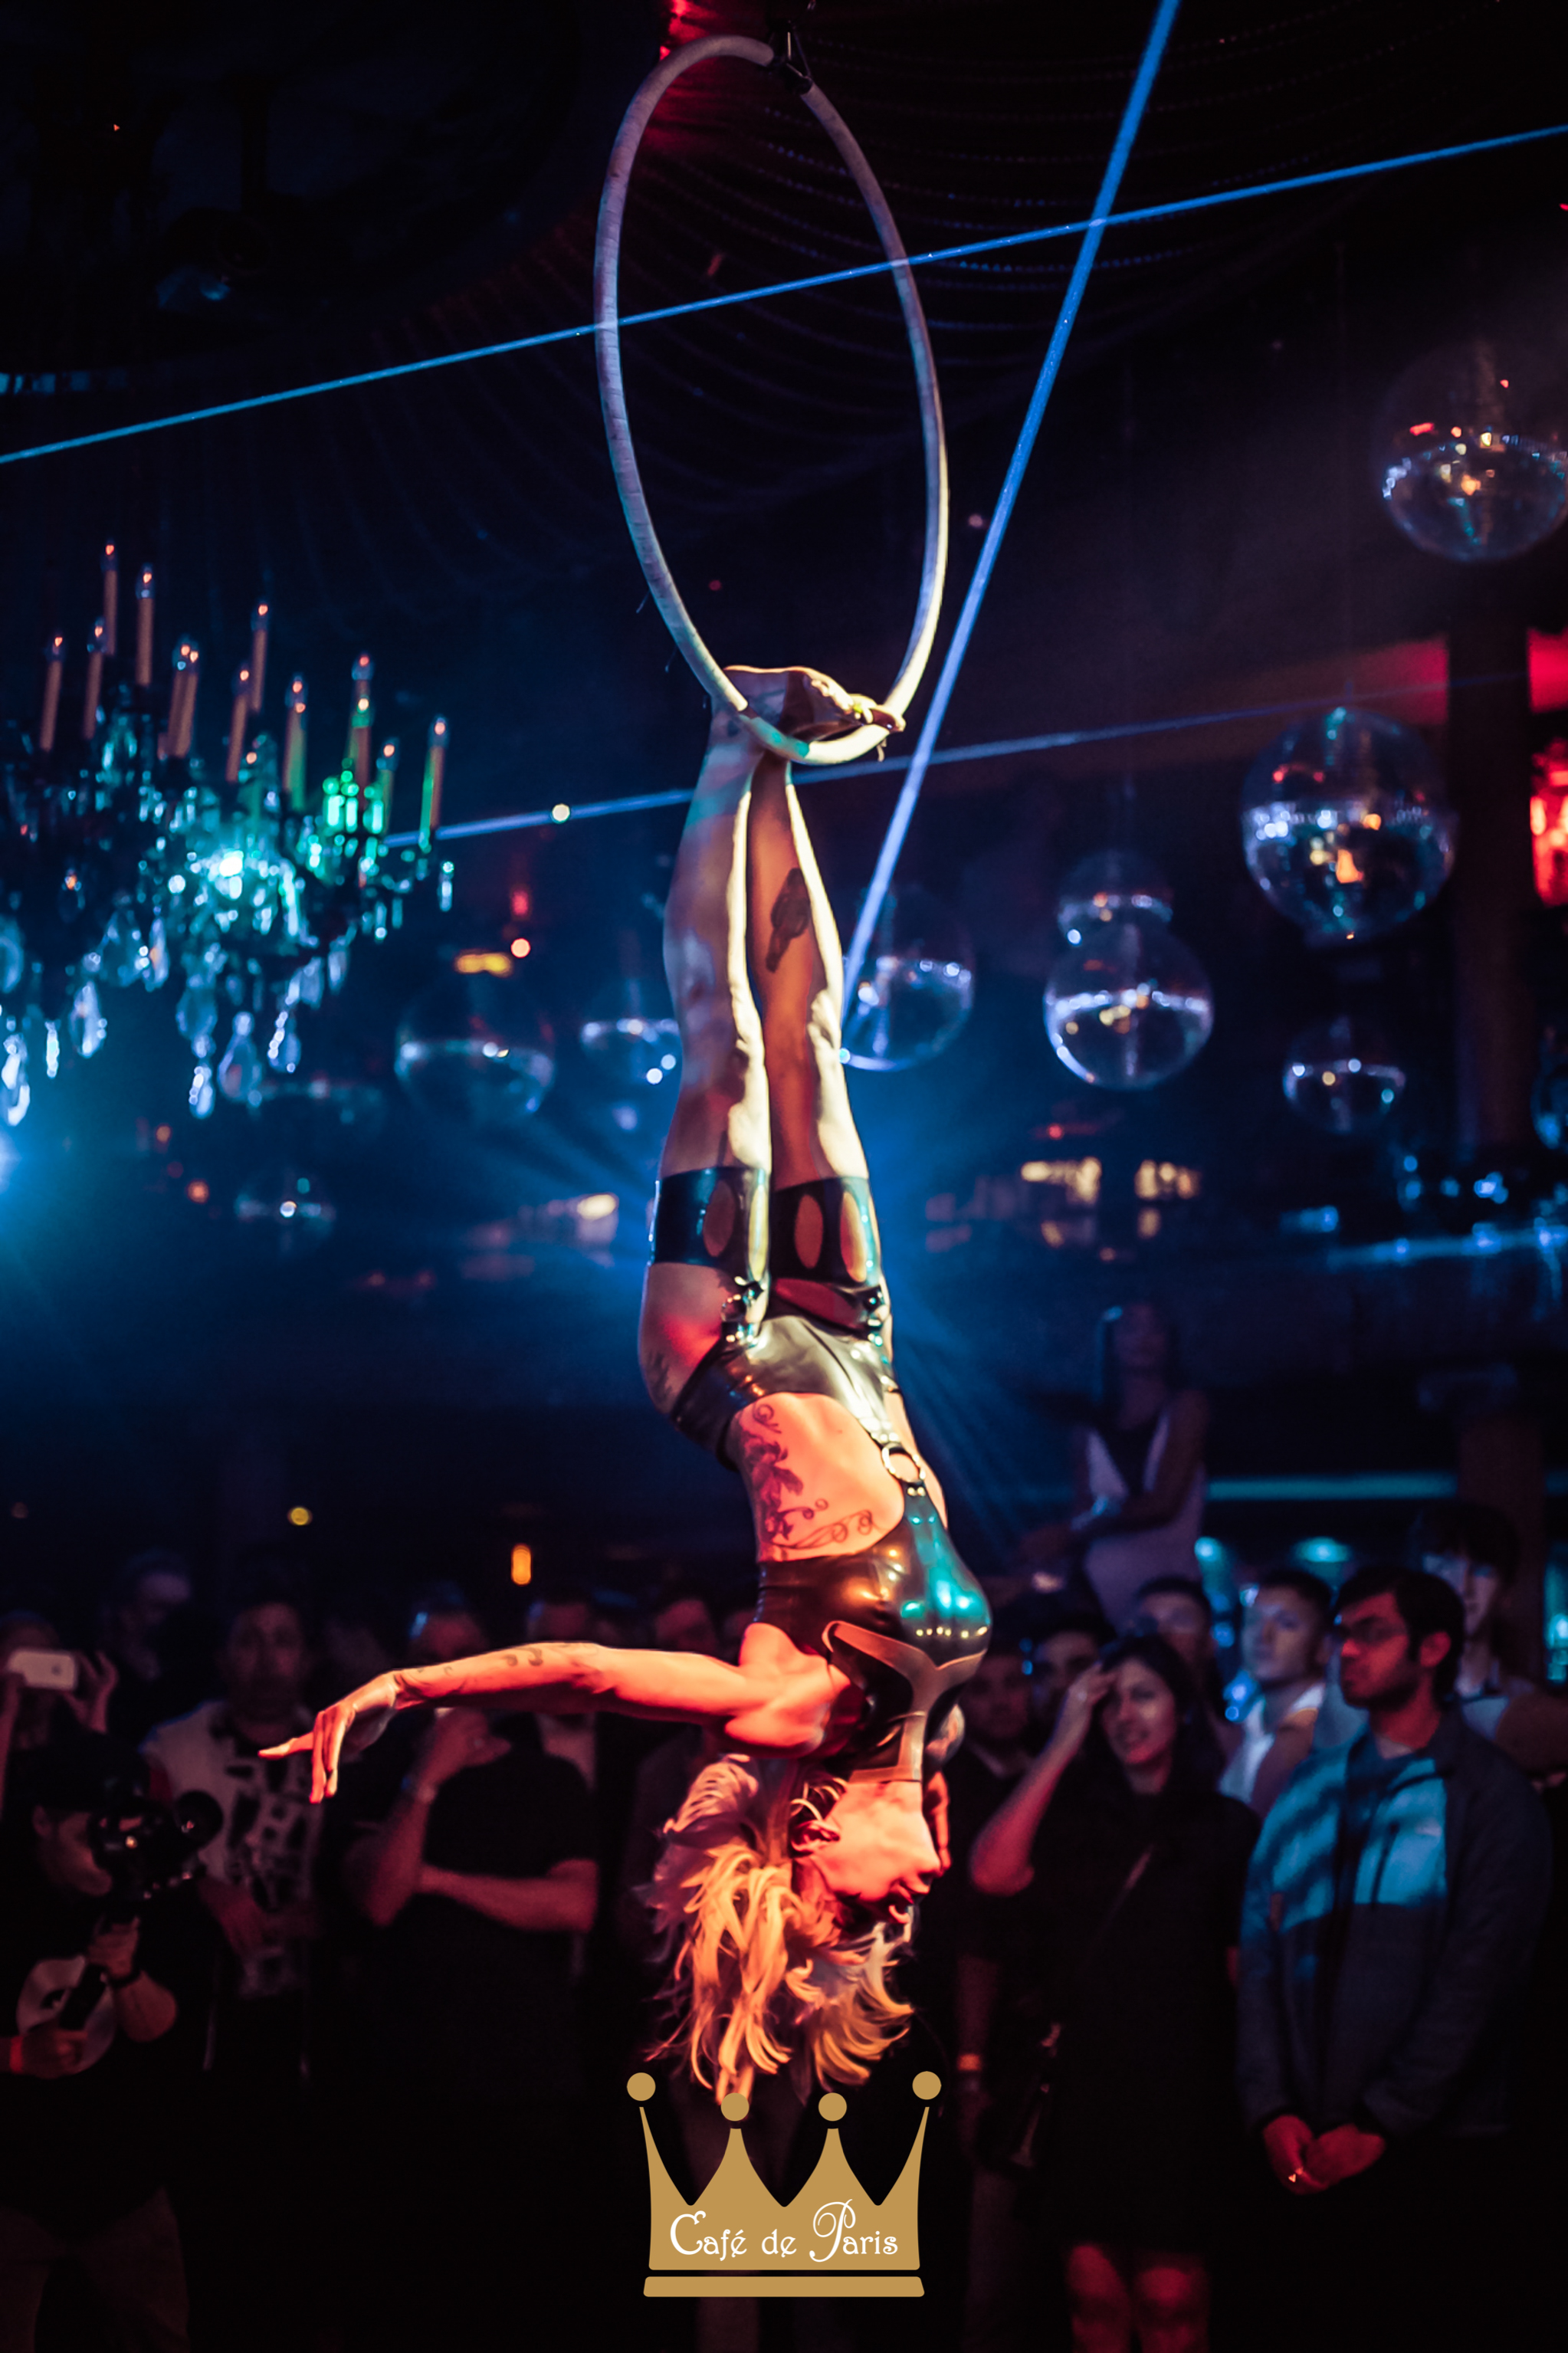 Cafe de Paris - Valentines Weekend - Crazy, Cupid, Love Party